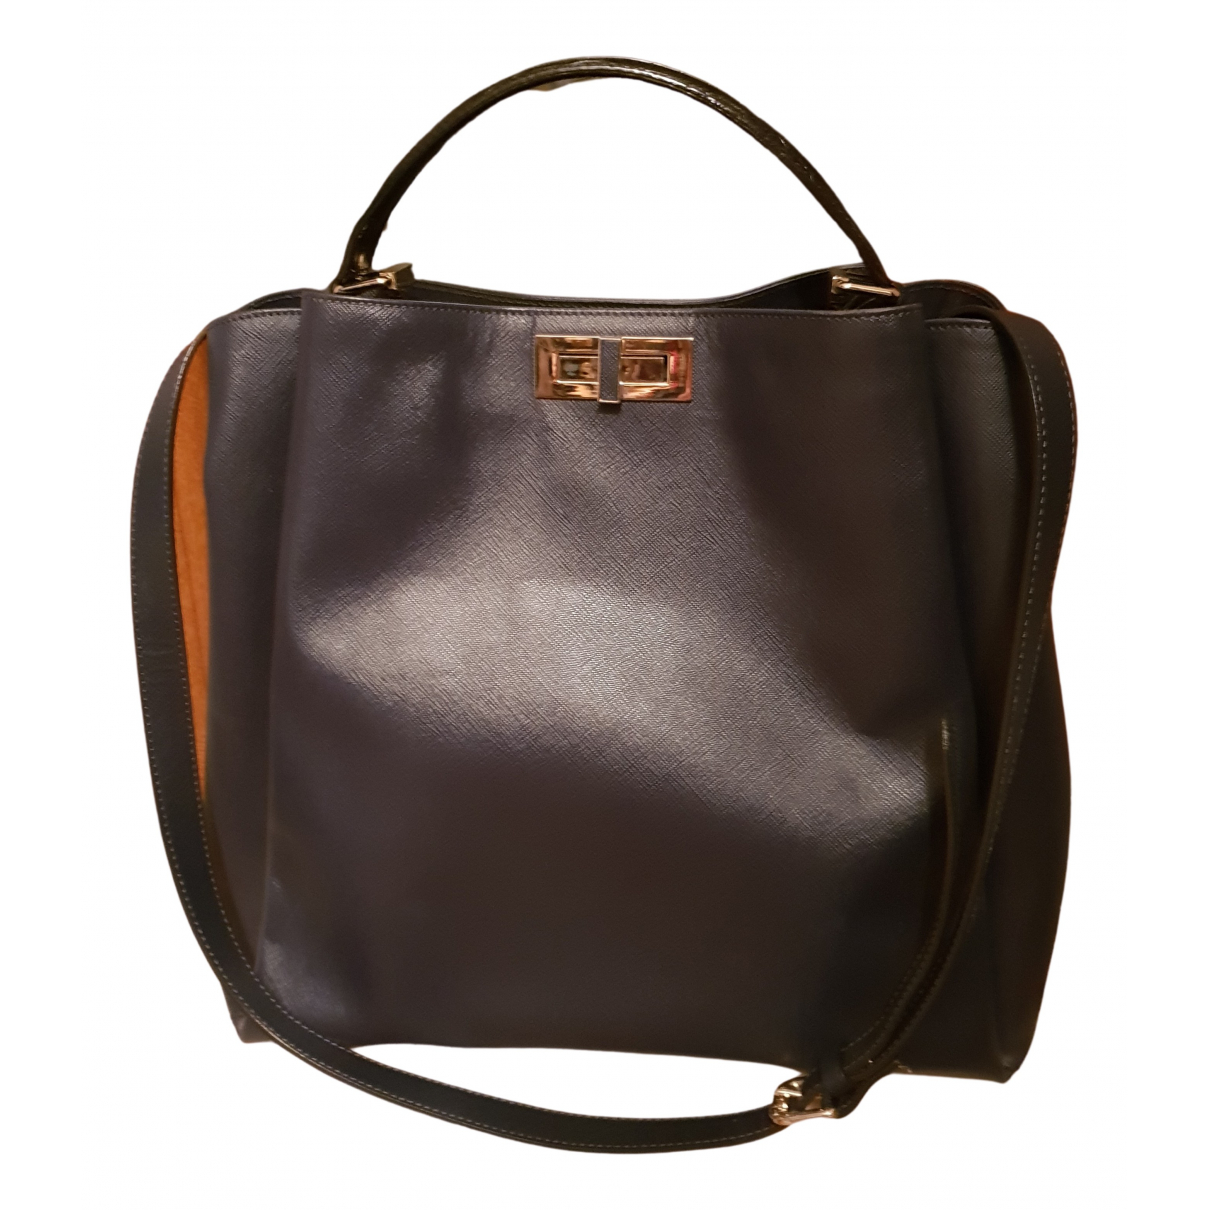 Non Signé / Unsigned N Navy Leather handbag for Women N